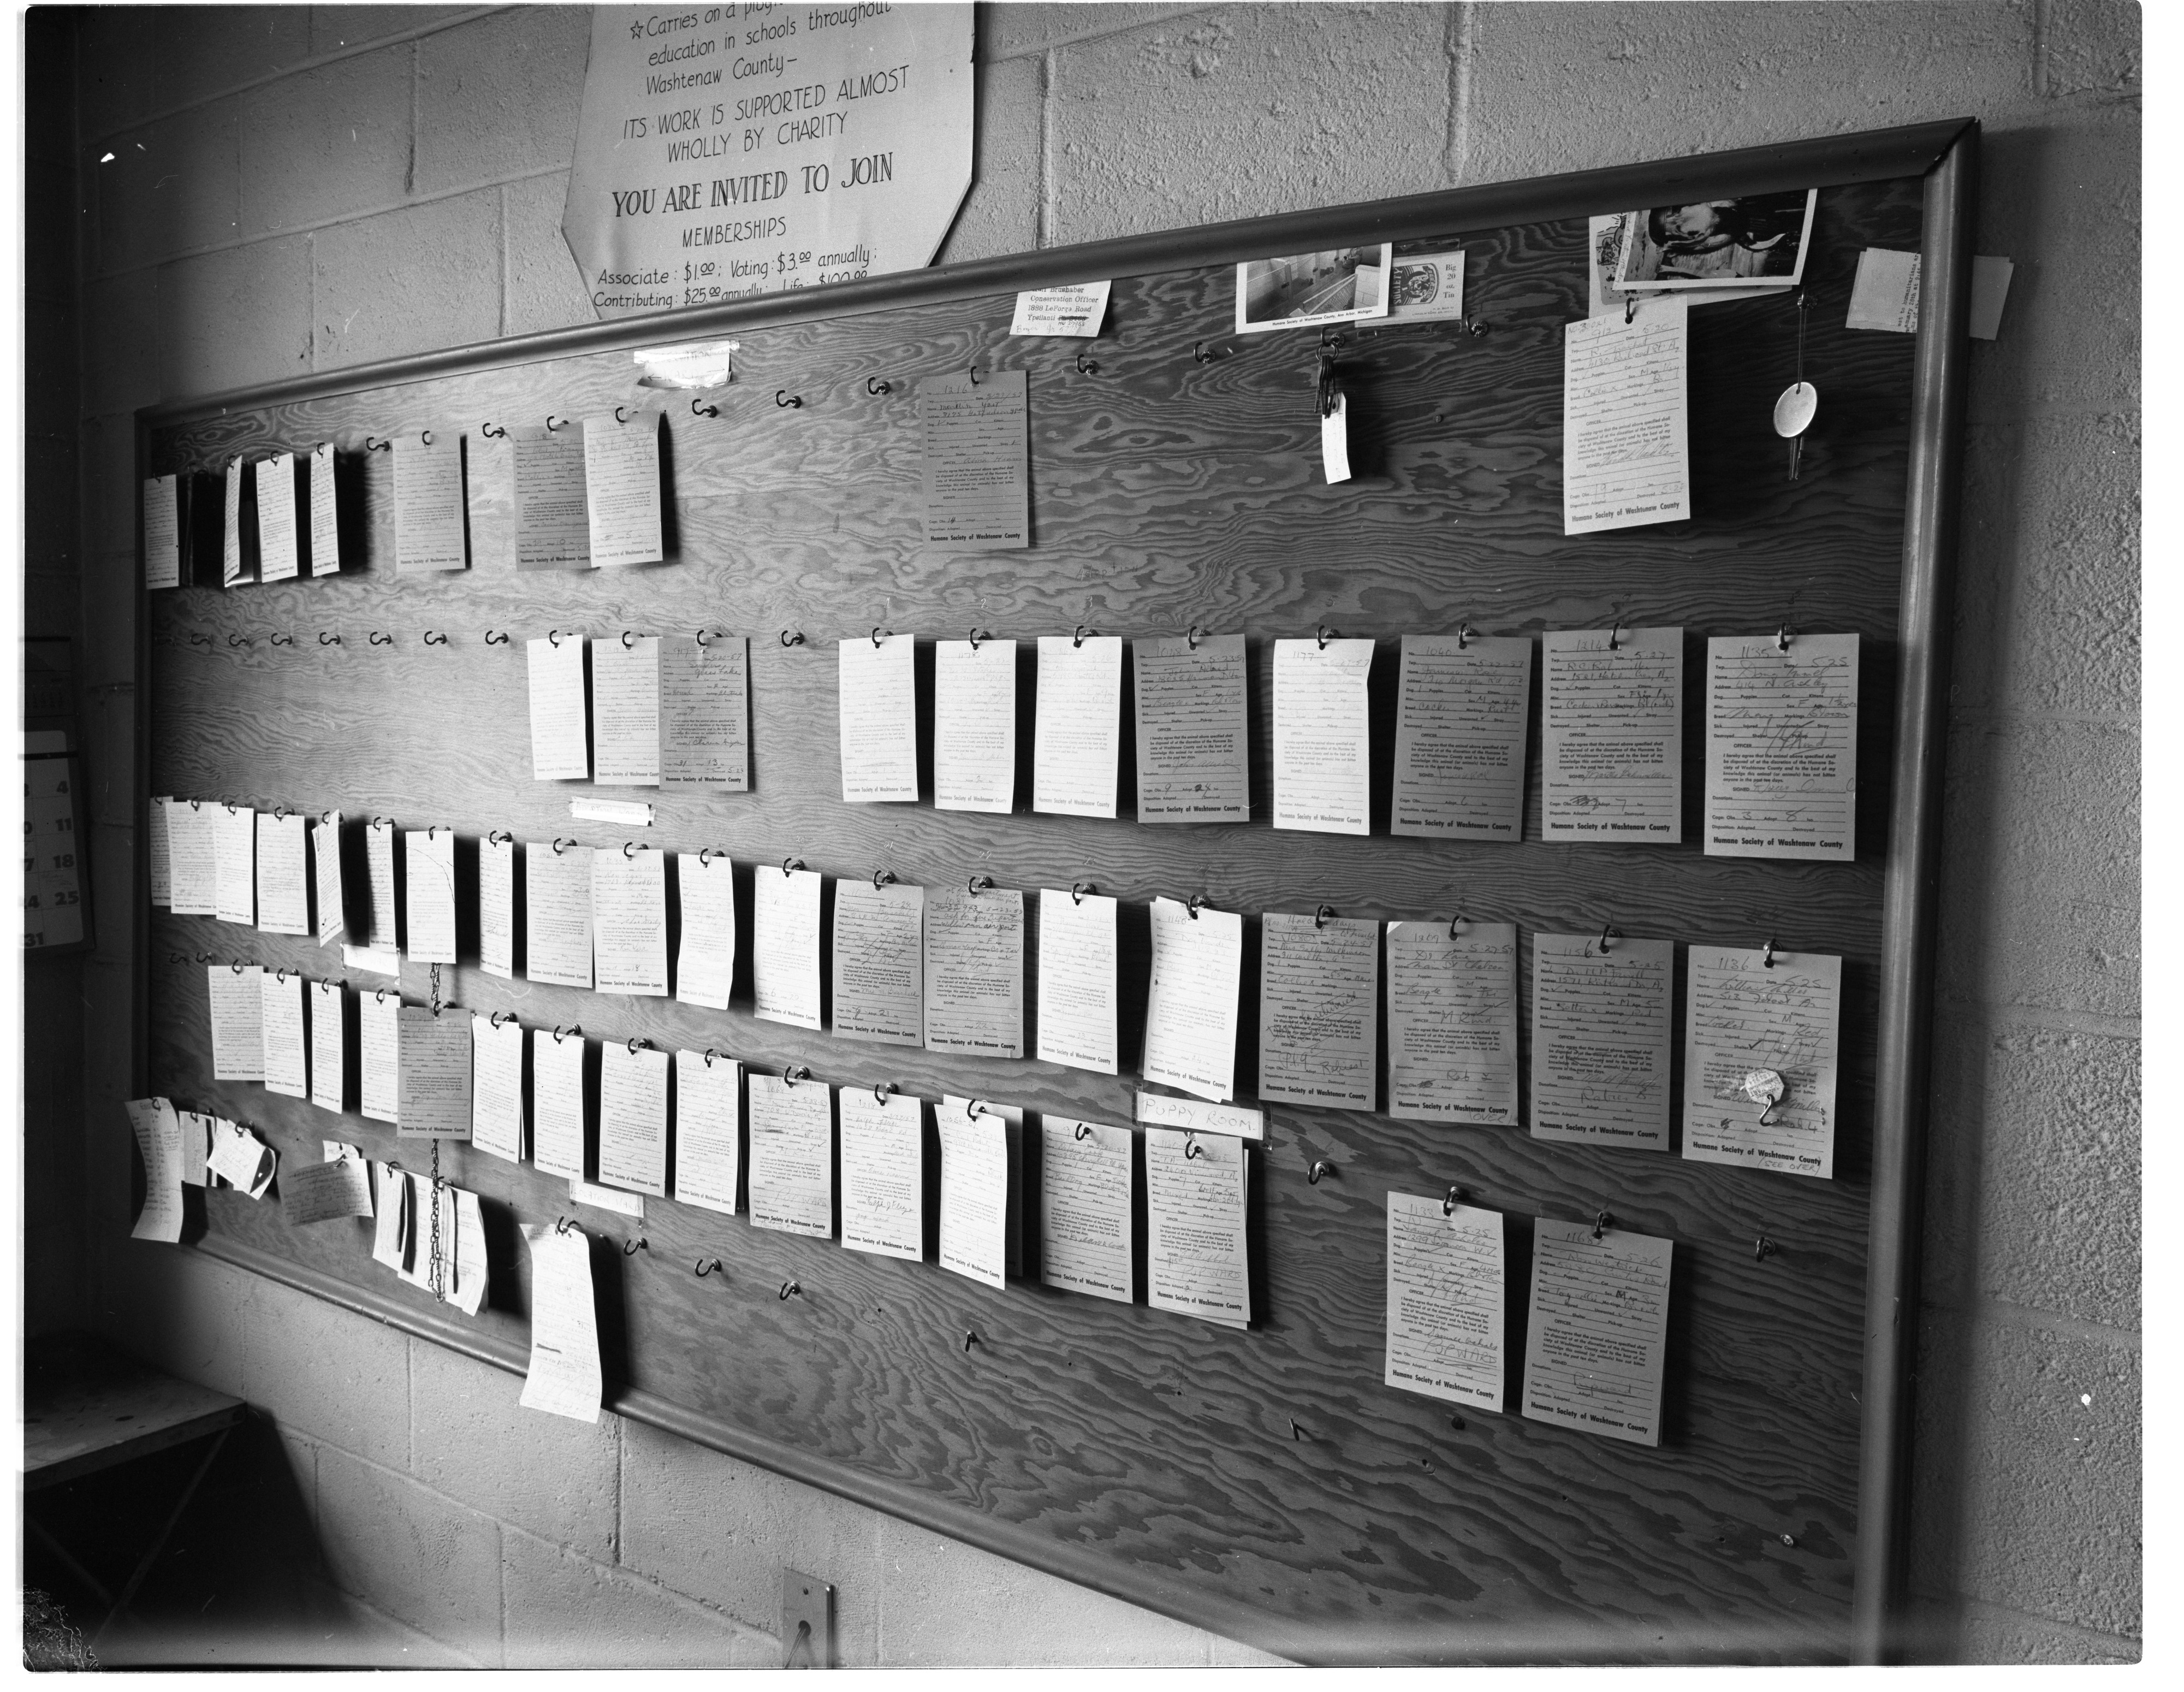 Tags for Lost or Unwanted Dogs and Cats at Humane Society Shelter, May 1957 image